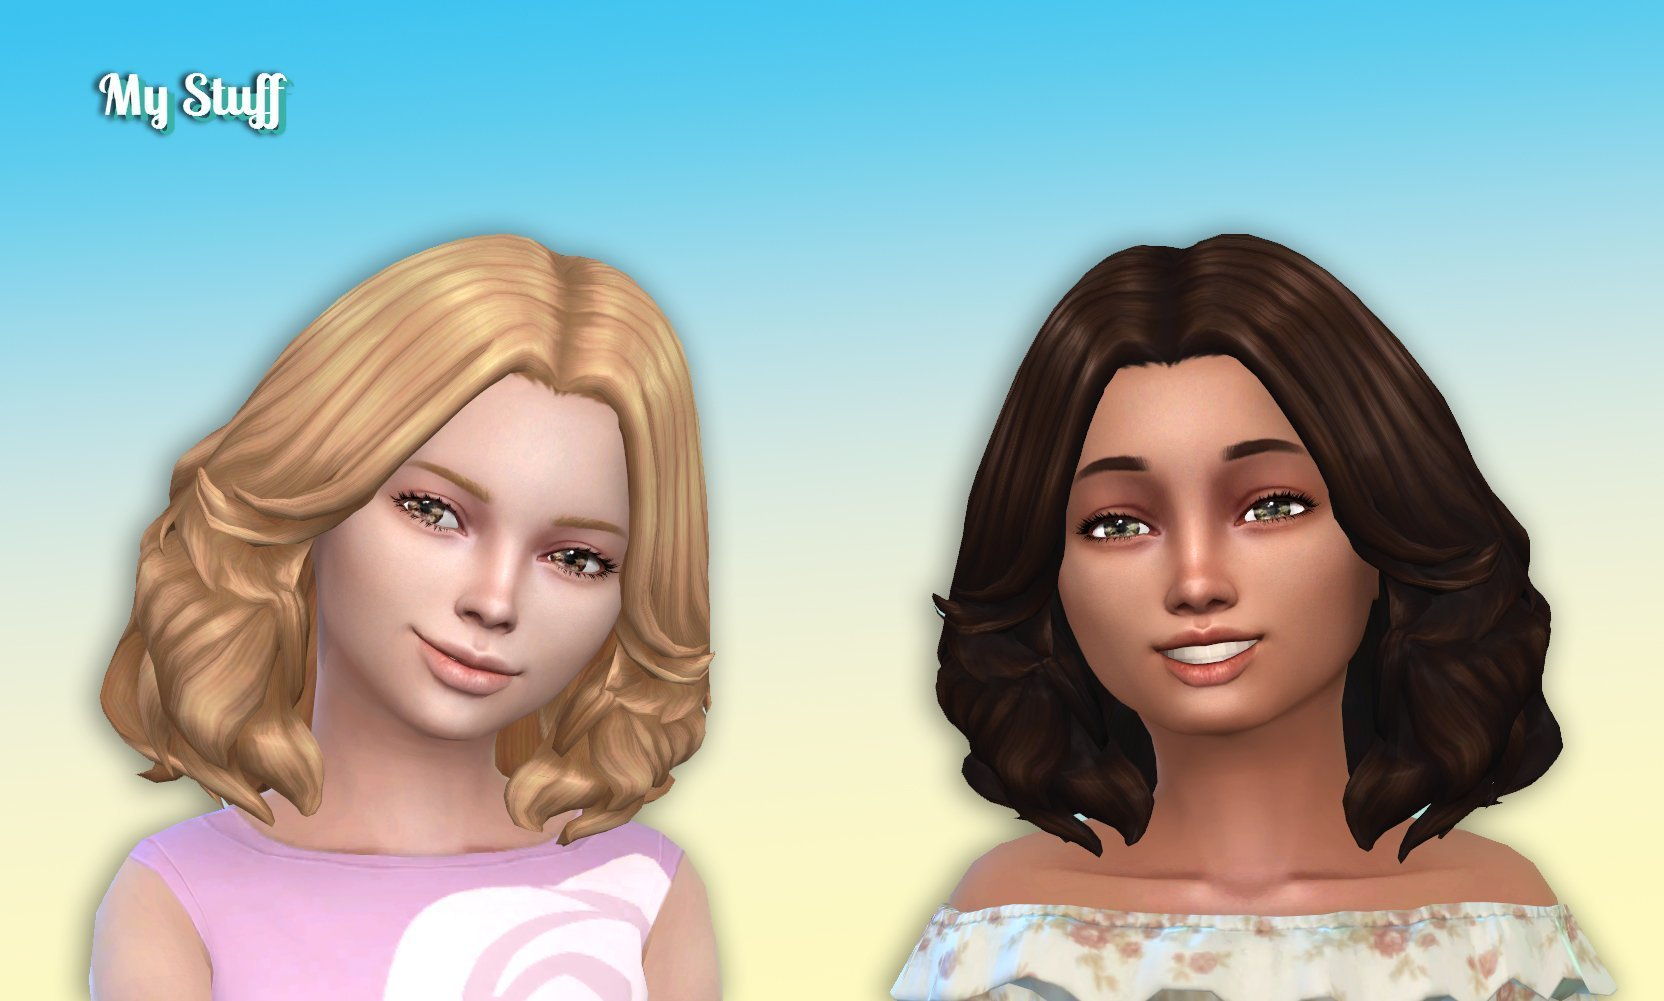 Felicia Hairstyle for Girls